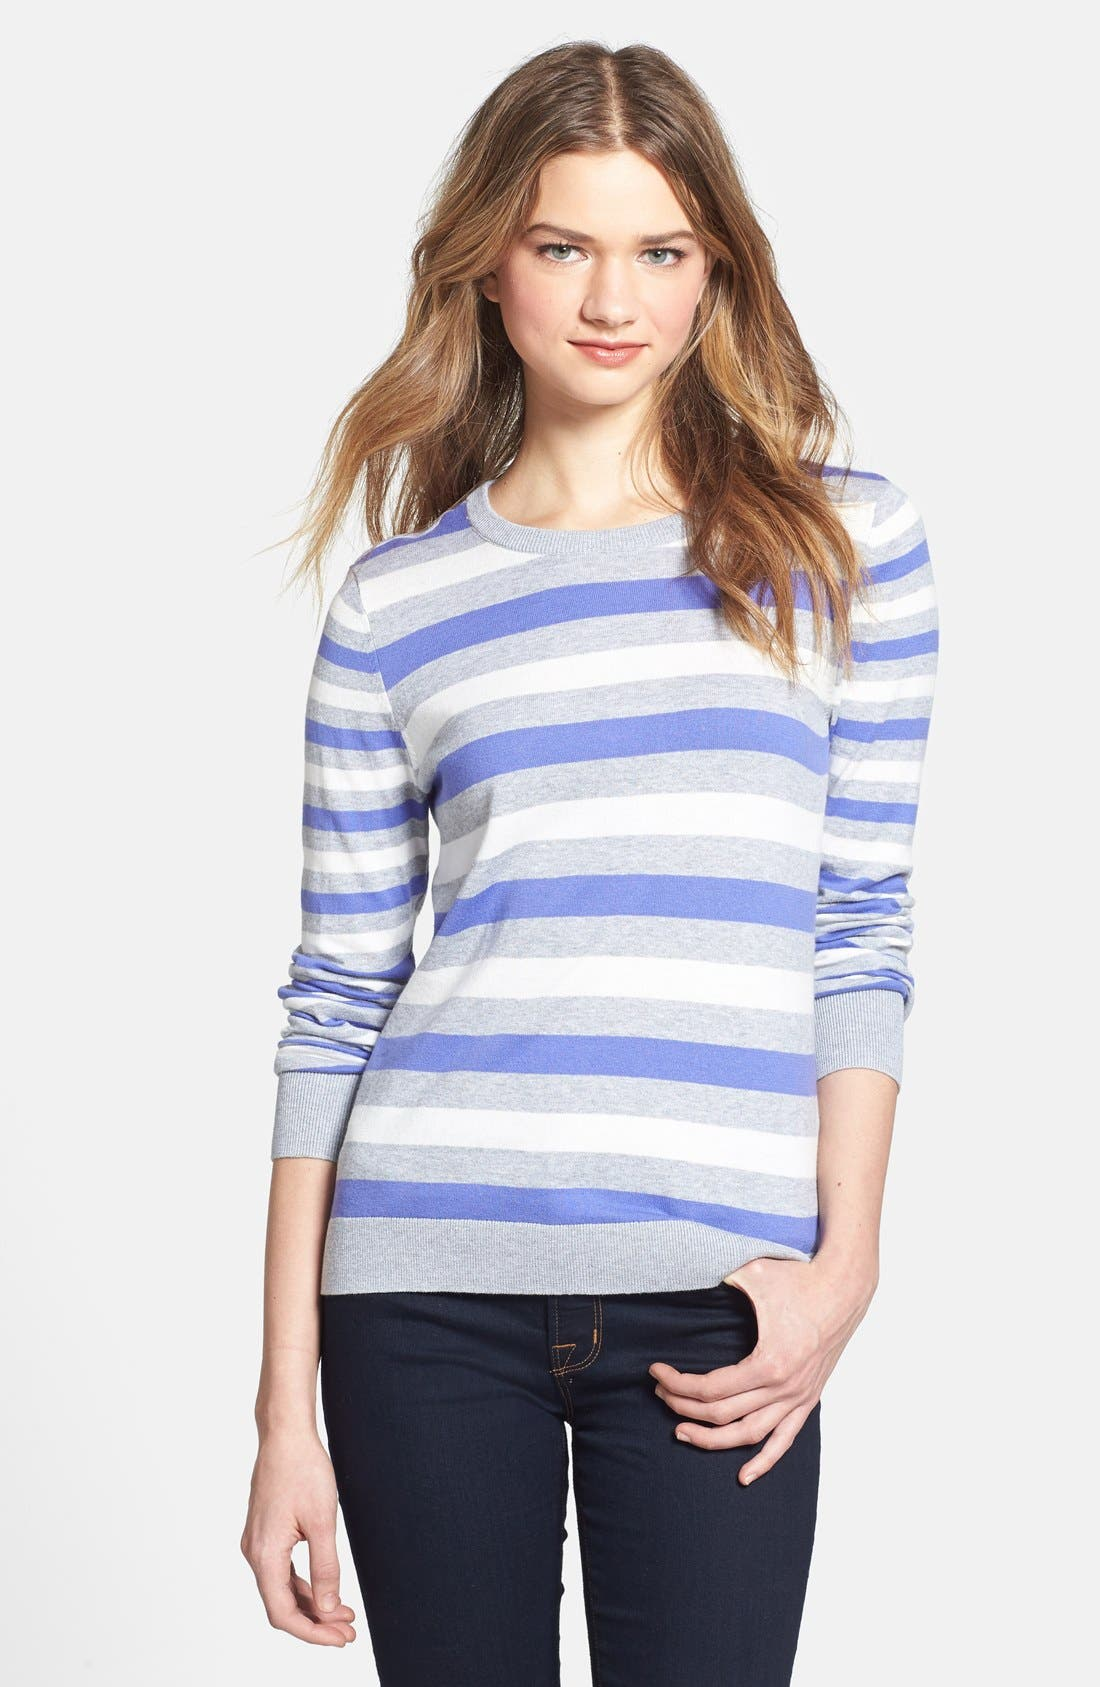 Alternate Image 1 Selected - Vince Camuto Stripe Crewneck Sweater (Petite)